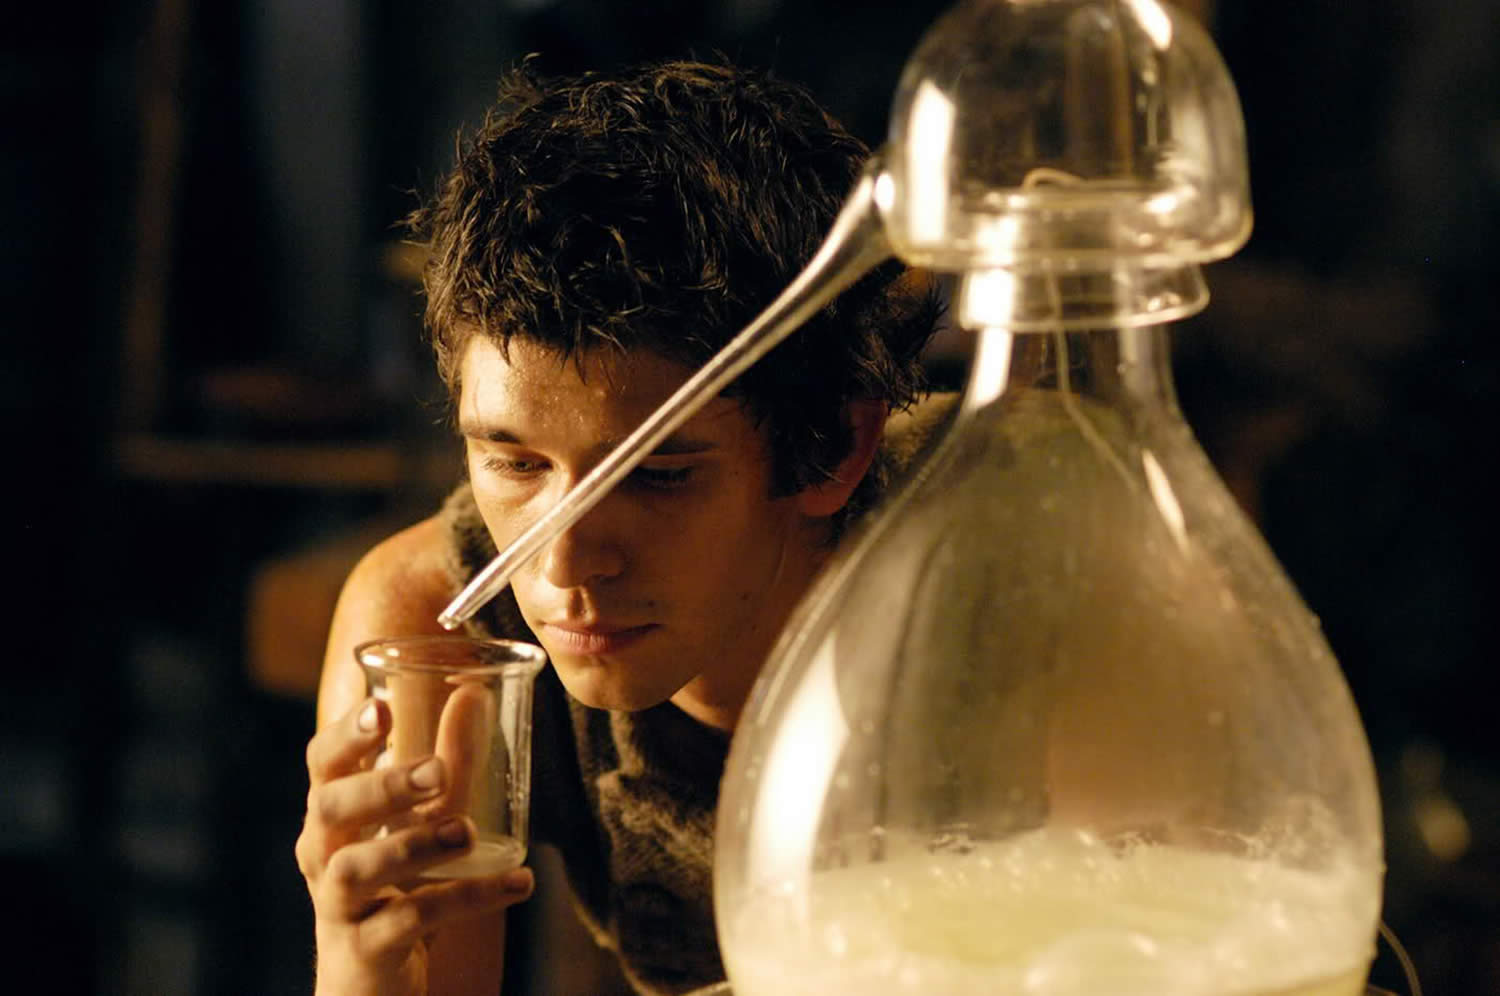 jean baptiste making perfume inPerfume: The Story of a Murderer